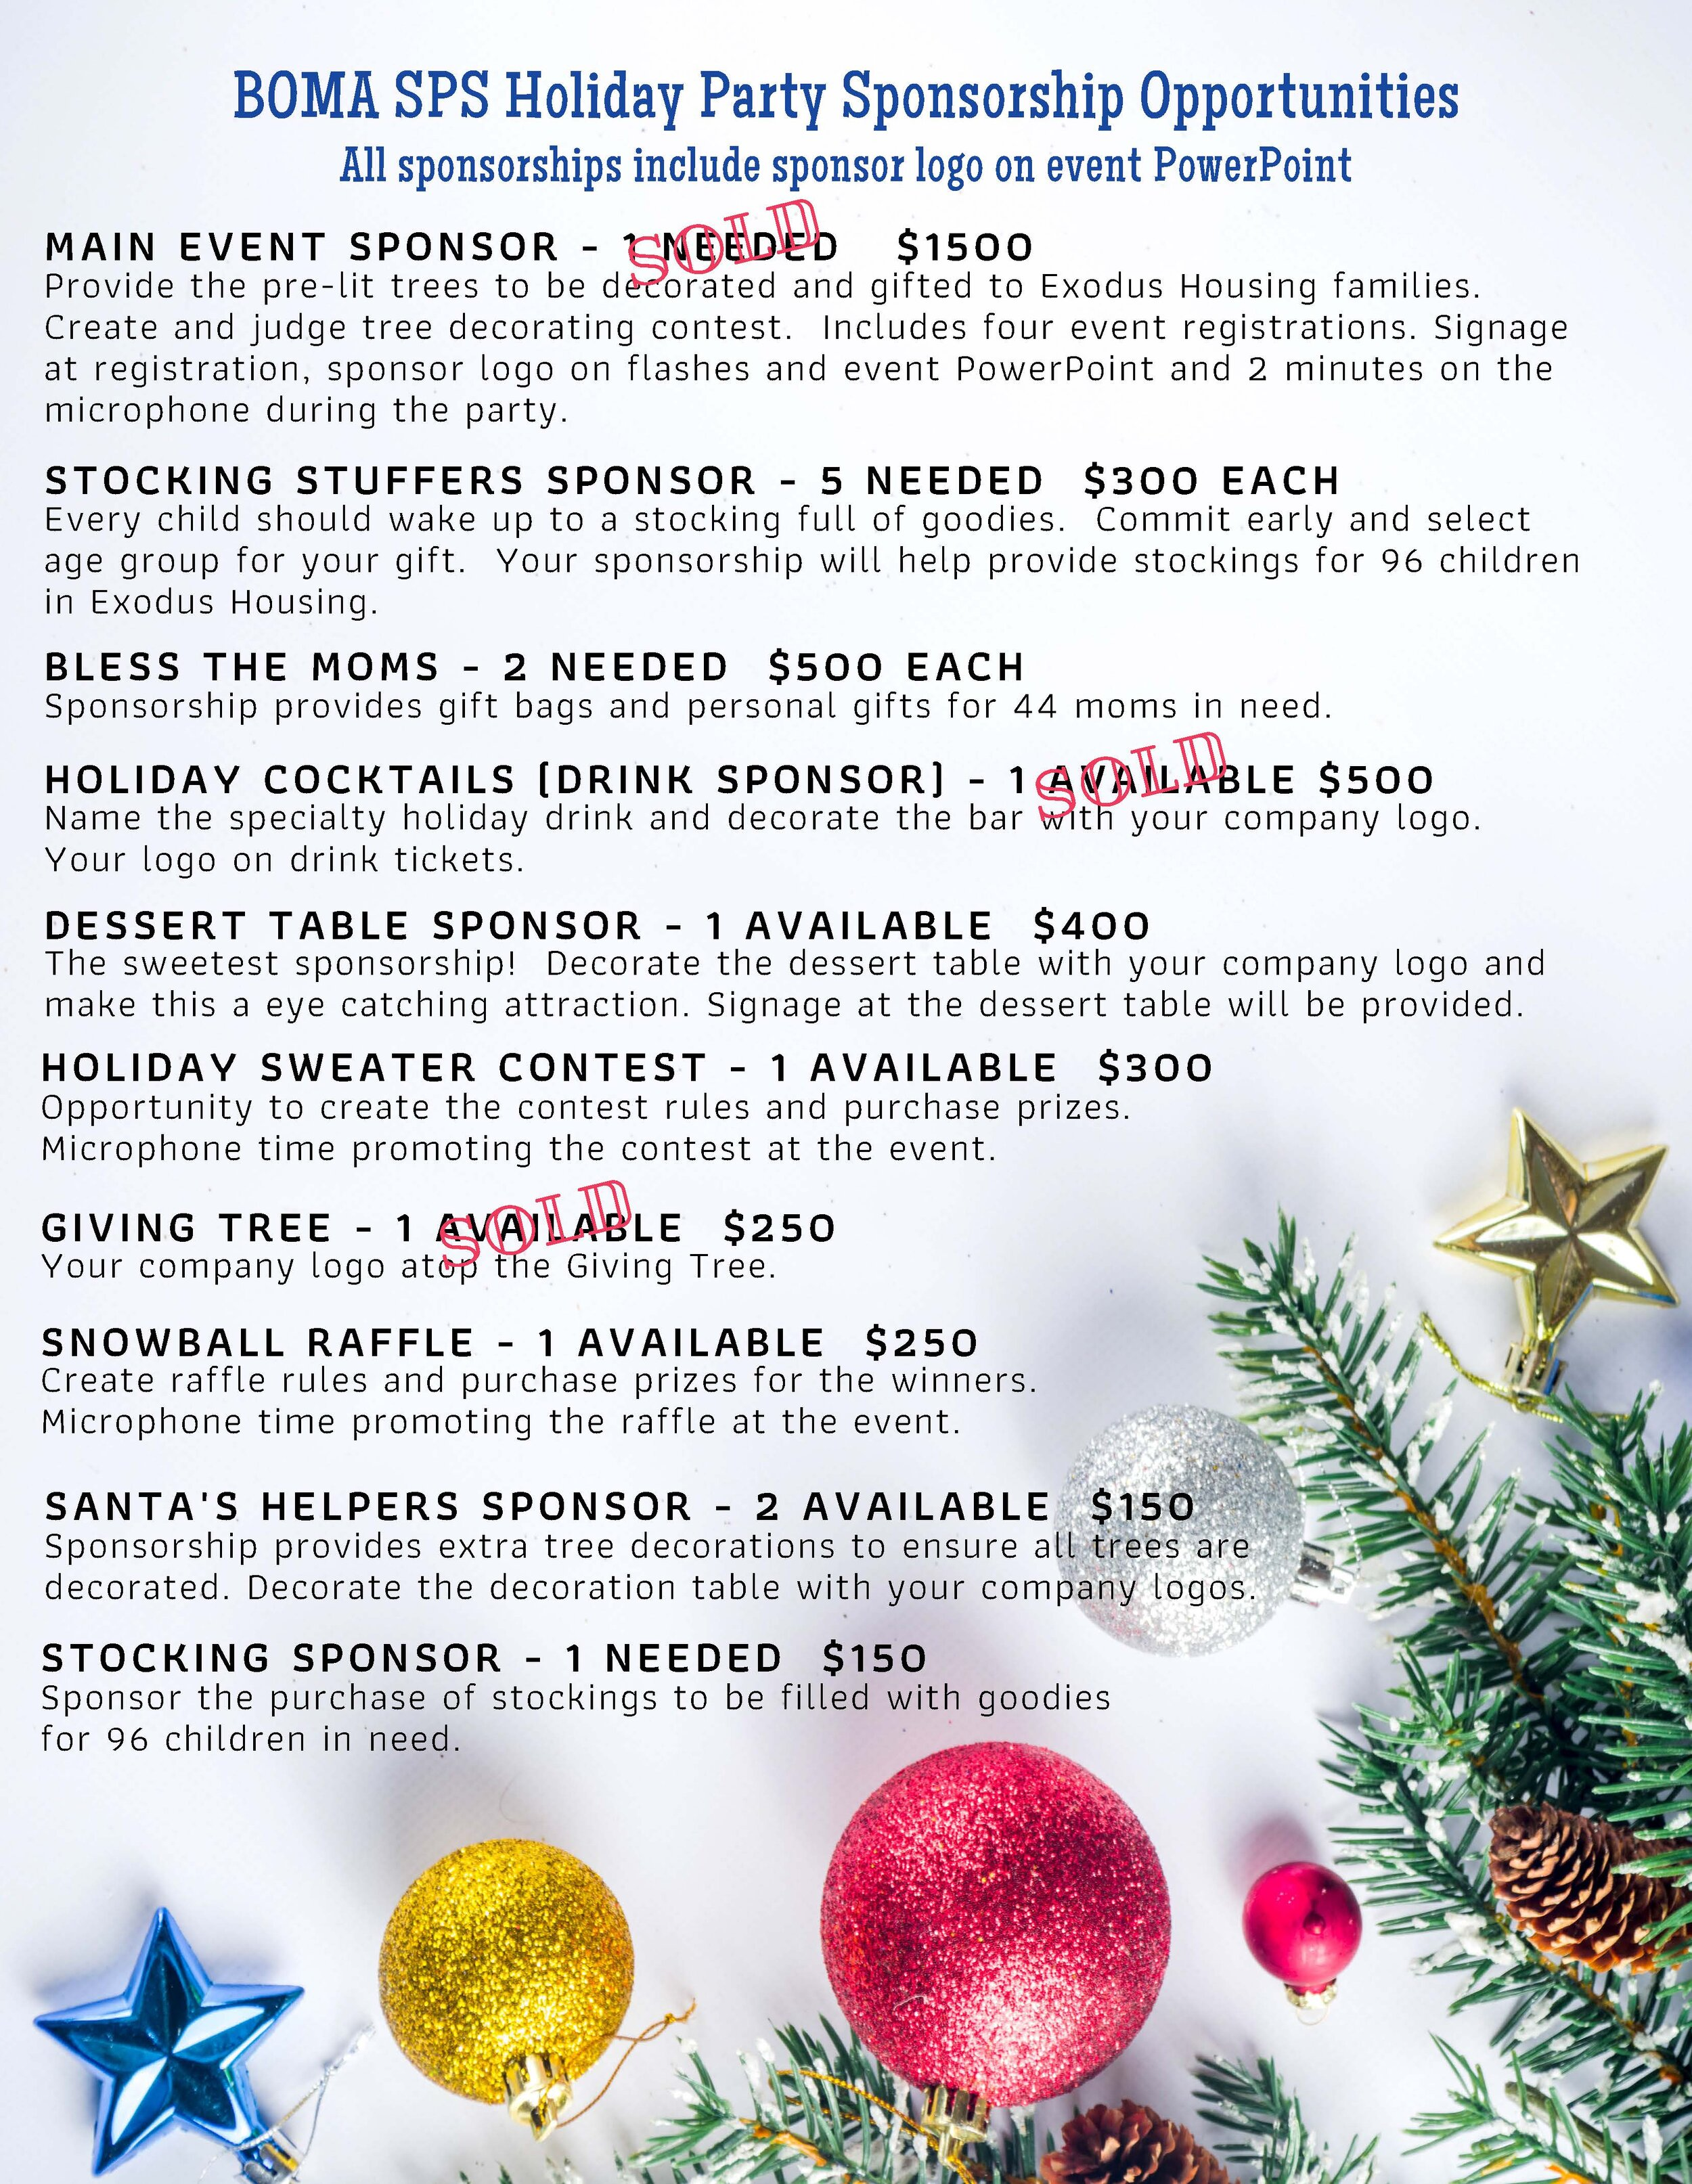 BOMA SPS HOLIDAY PARTY 2019 flyer_Page_2.jpg